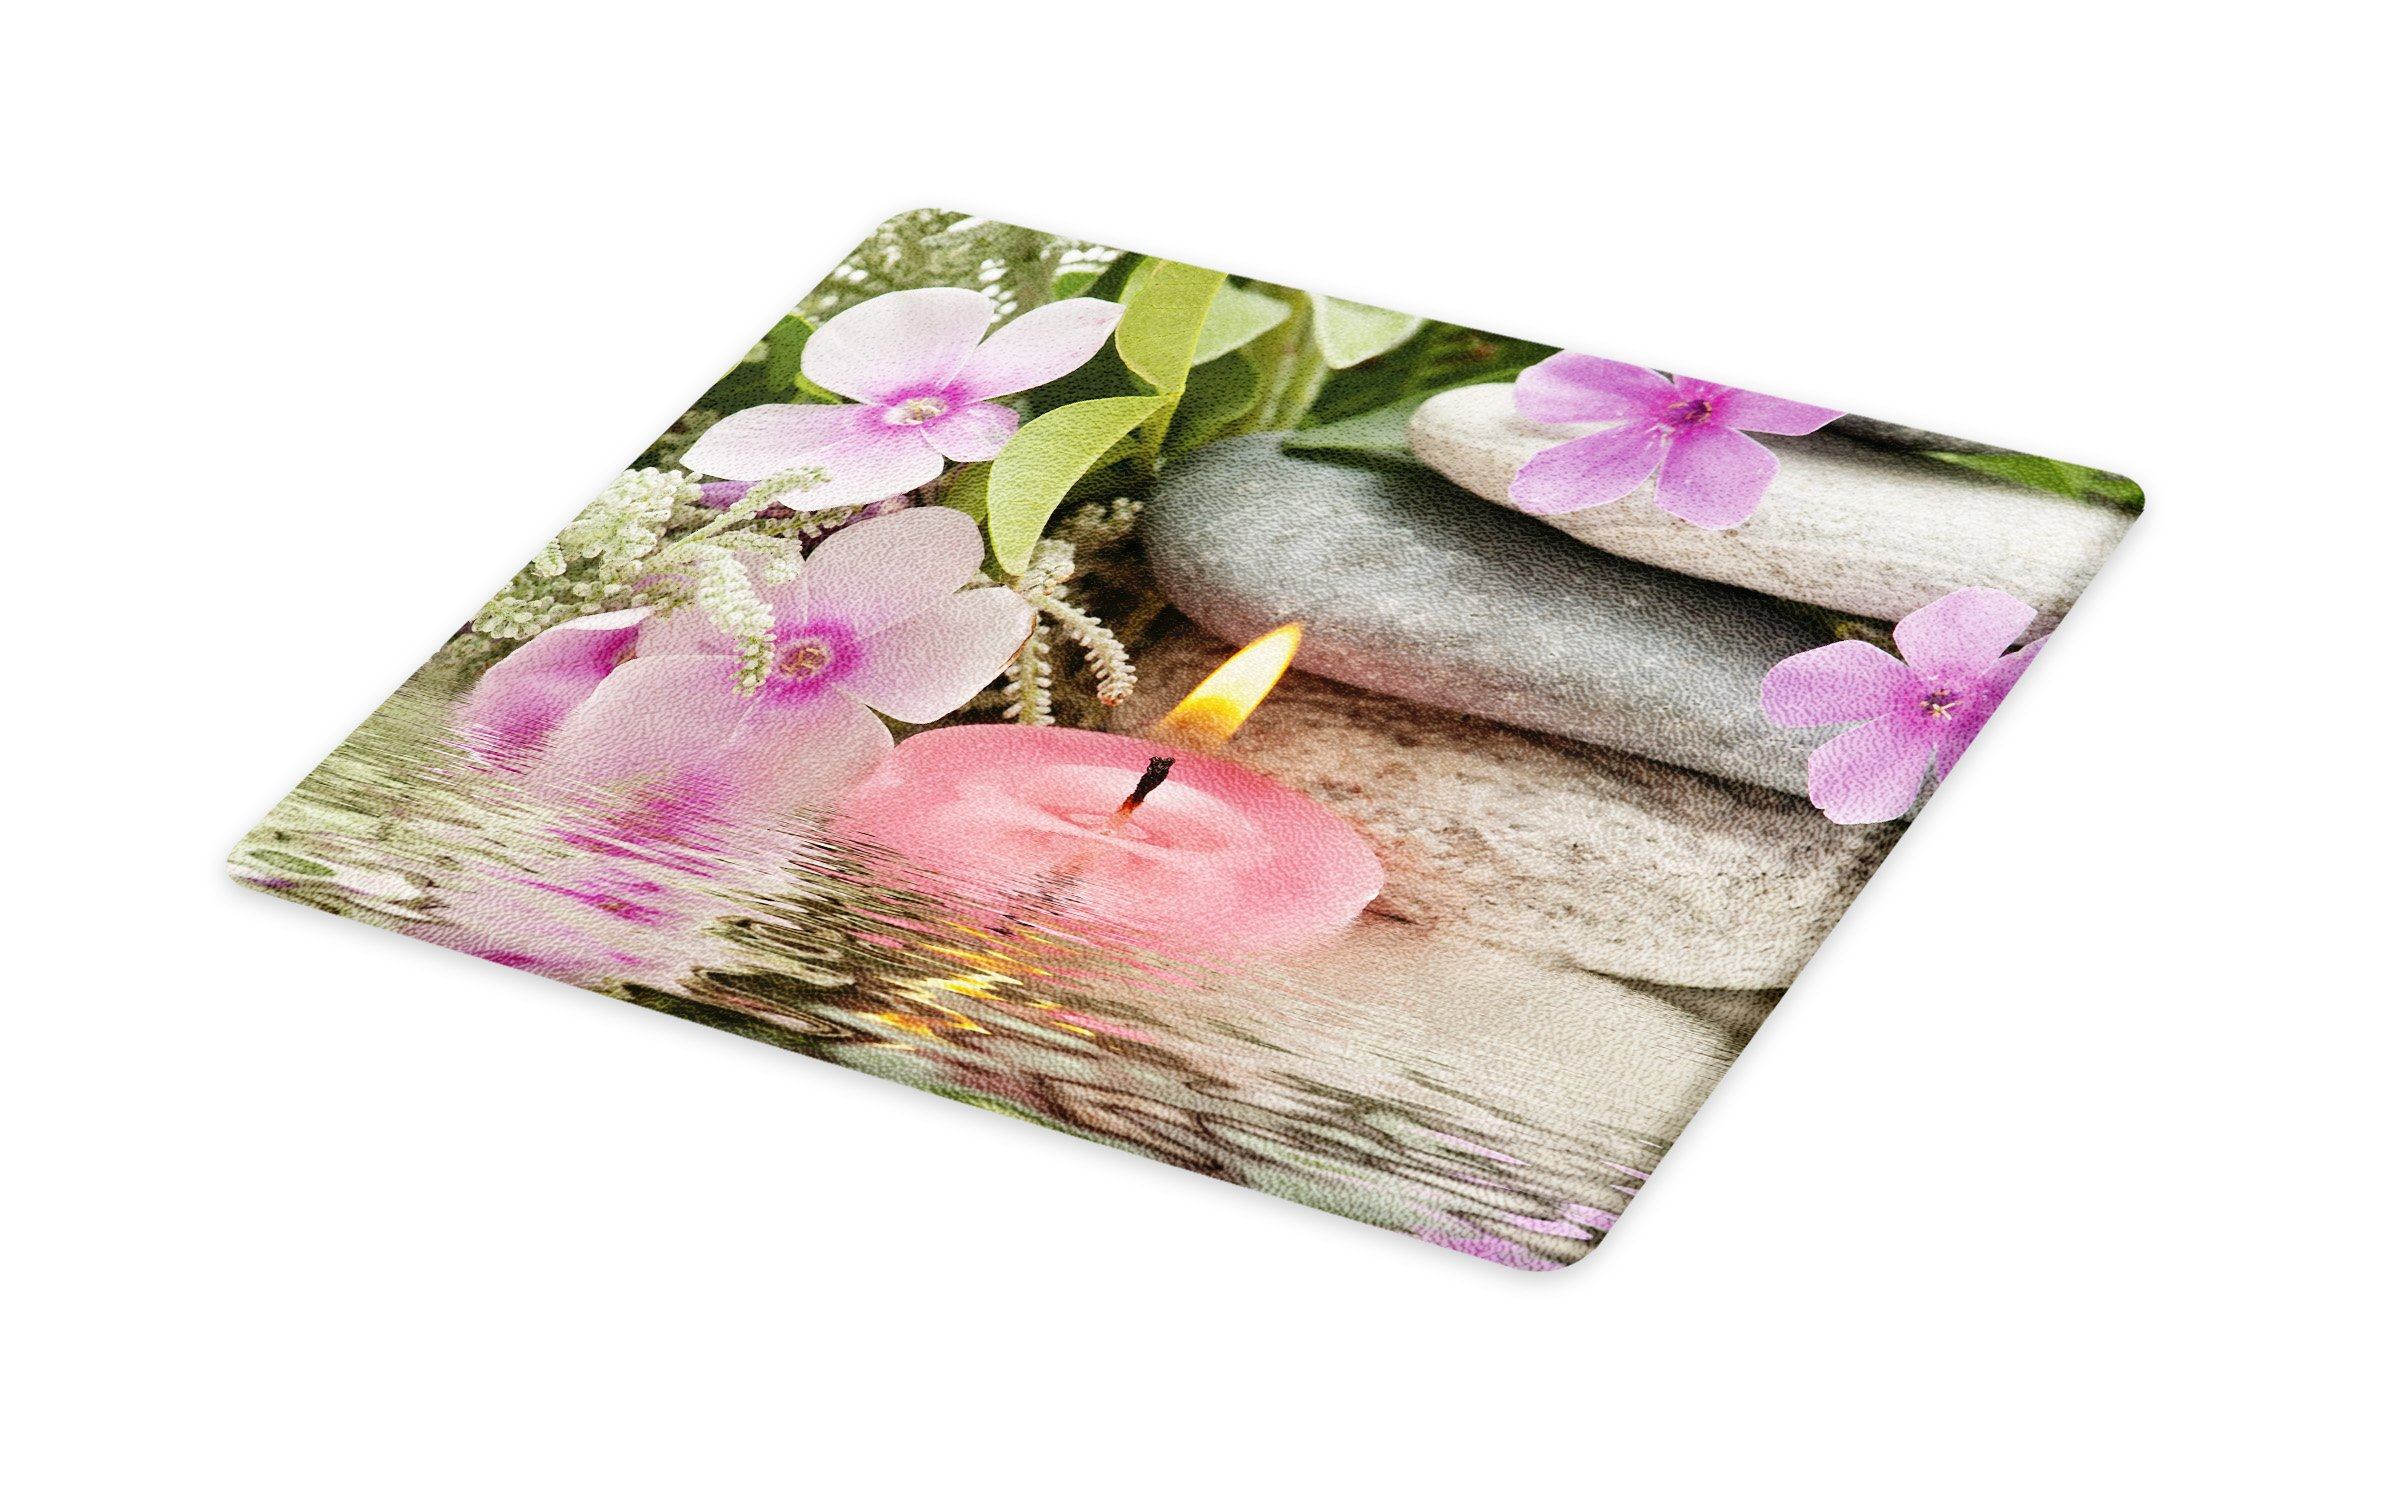 Lunarable Spa Cutting Board, Heaven on The Earth Peaceful Theme Violets Candle on a Water and Stones, Decorative Tempered Glass Cutting and Serving Board, Small Size, Purple Grey and Green